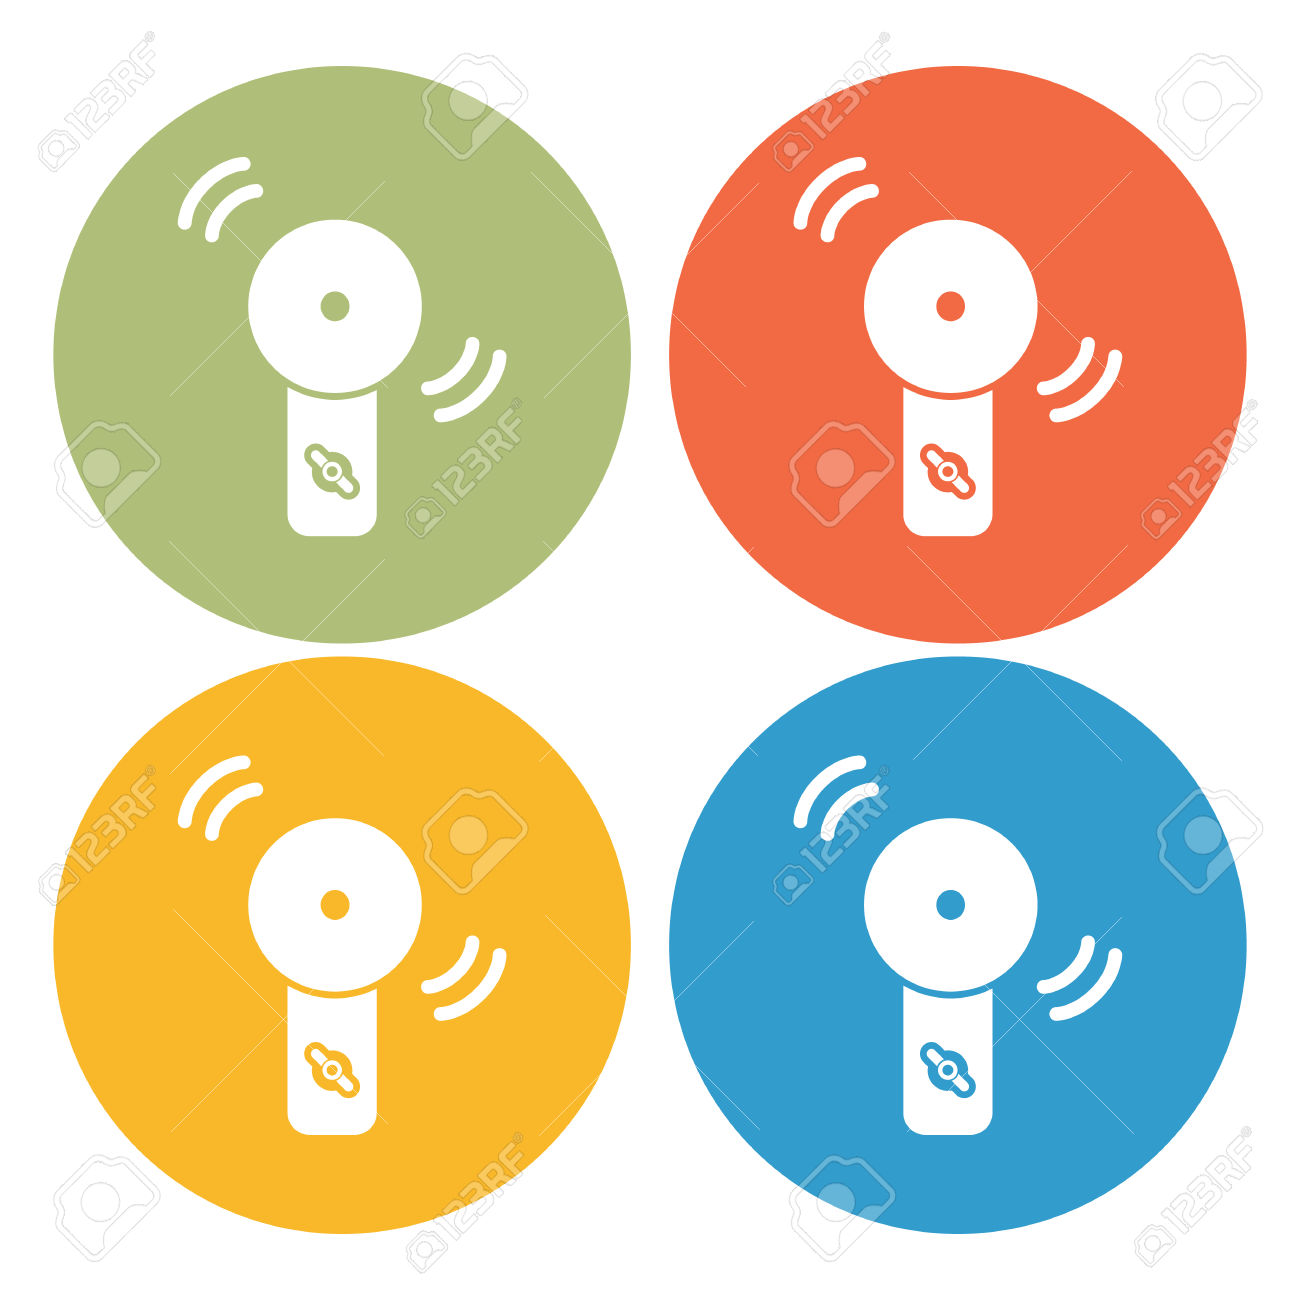 Alarm Device Icon Royalty Free Cliparts, Vectors, And Stock.